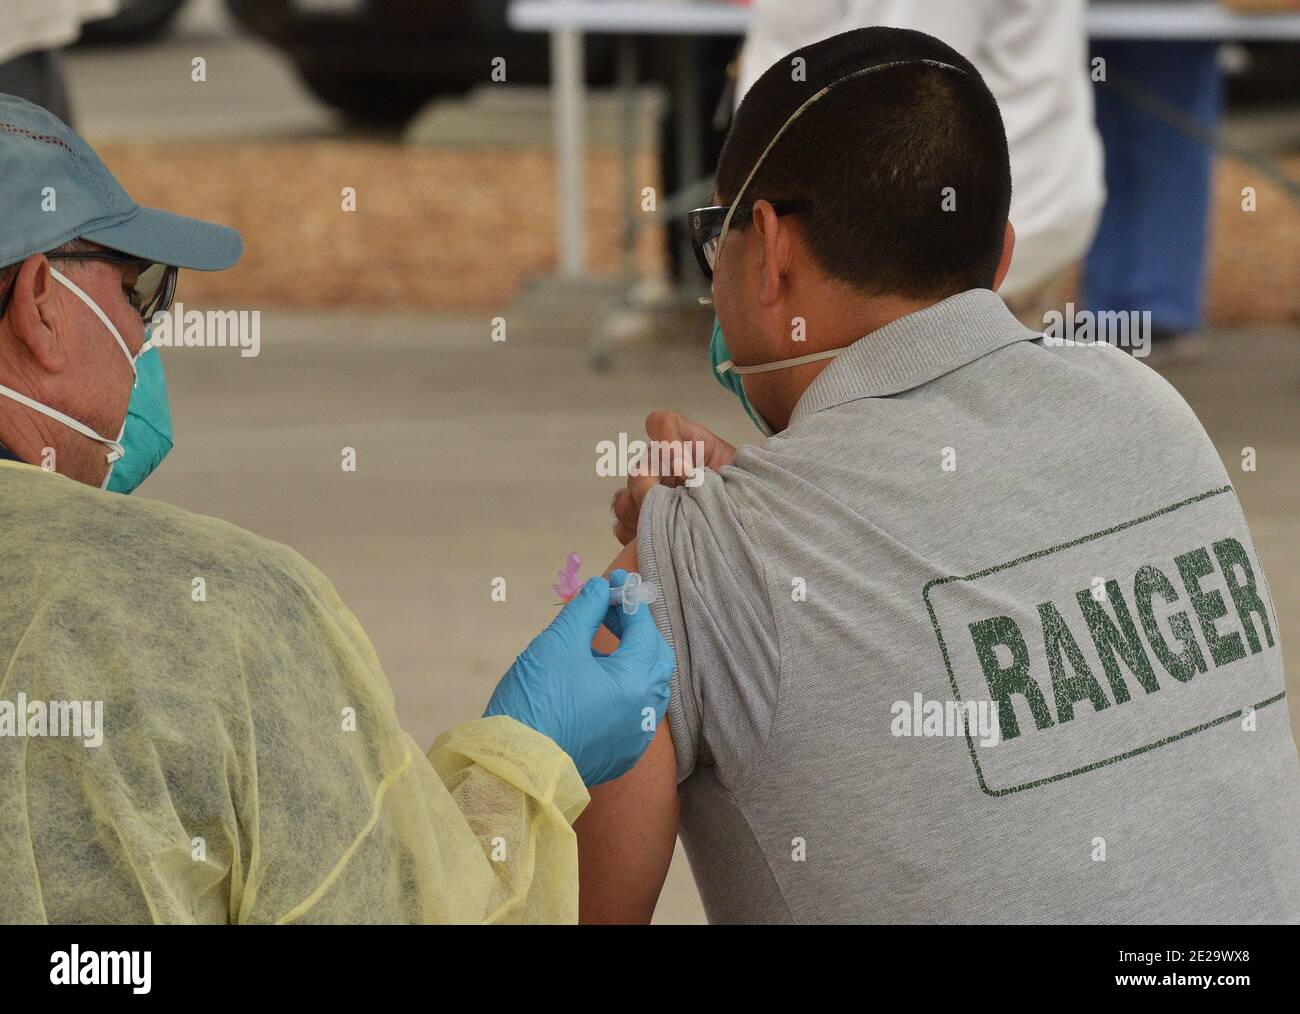 Los Angeles, California, USA. 13th Jan, 2021. A park ranger is inoculated with the Moderna COVID-19 vaccine at the Balboa Sports Center vaccination site in Los Angeles on Tuesday, January 12, 2021. People aged 65 and older and those with serious.underlying health conditions in Los Angeles and across California could quickly become eligible for a COVID-19 vaccine, with federal officials urging states Tuesday to more widely distribute the shots.  Photo by Jim Ruymen/UPI Credit: UPI/Alamy Live News Stock Photo